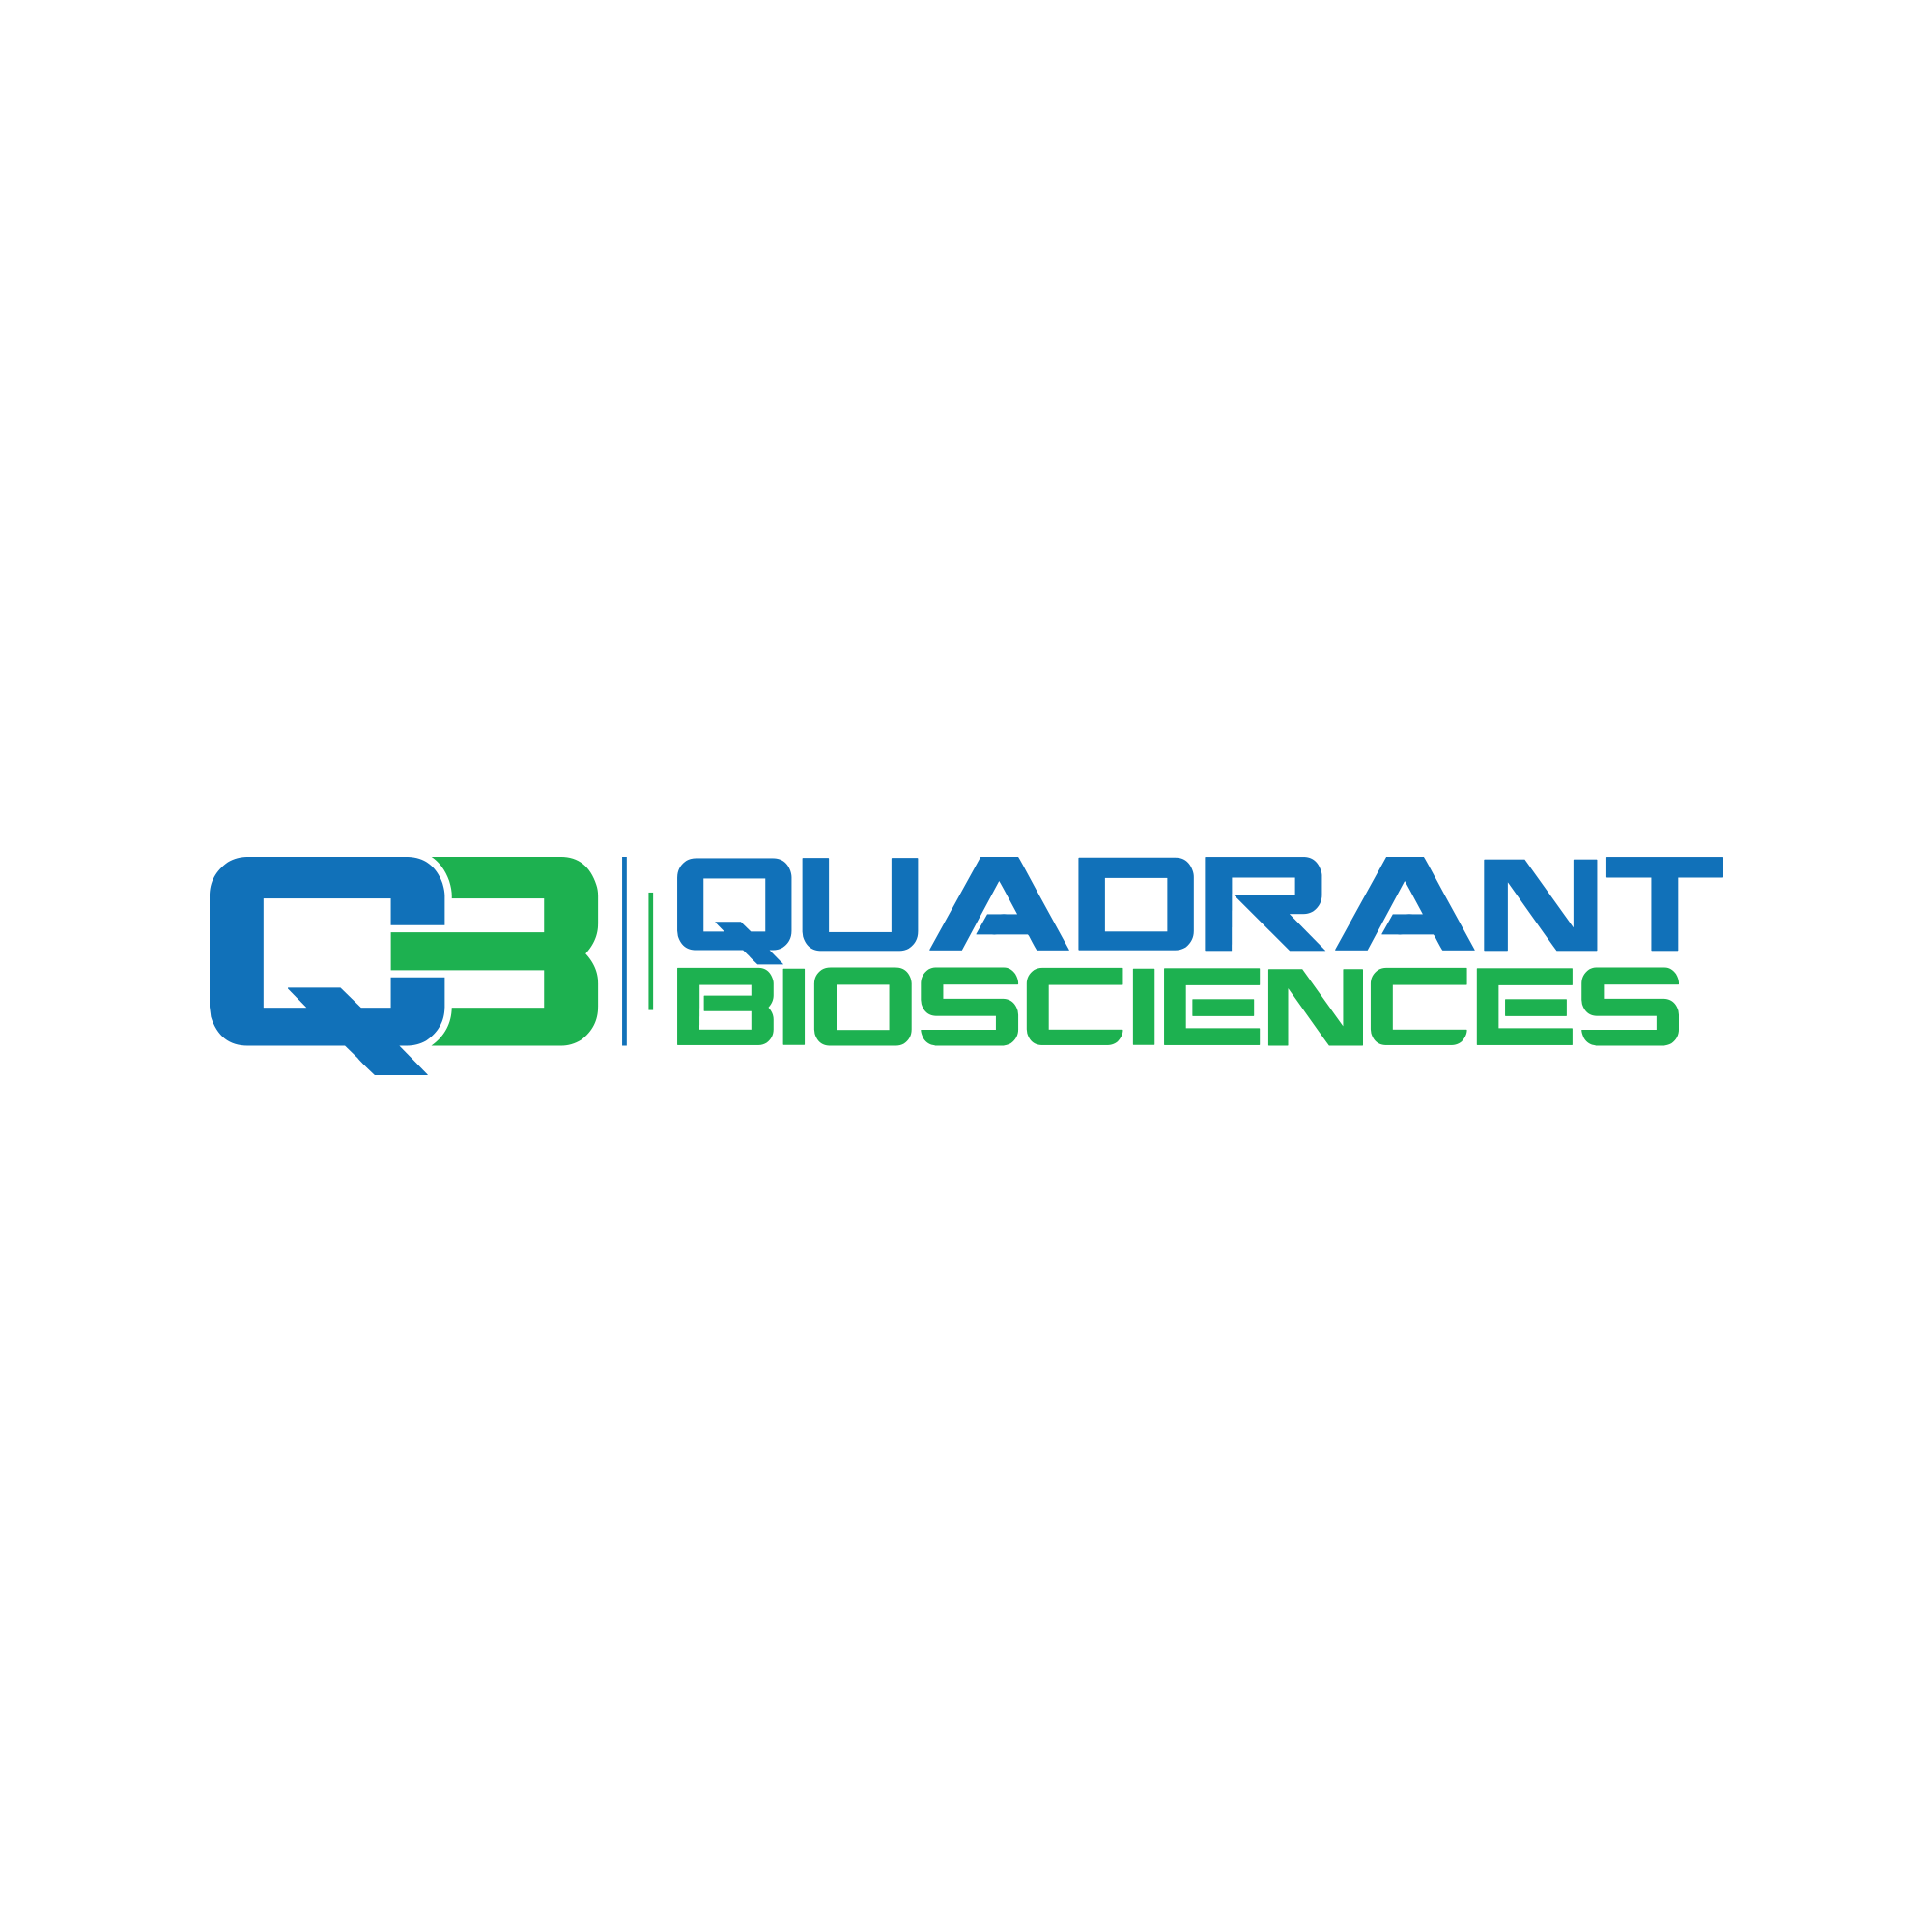 Quadrant Biosciences